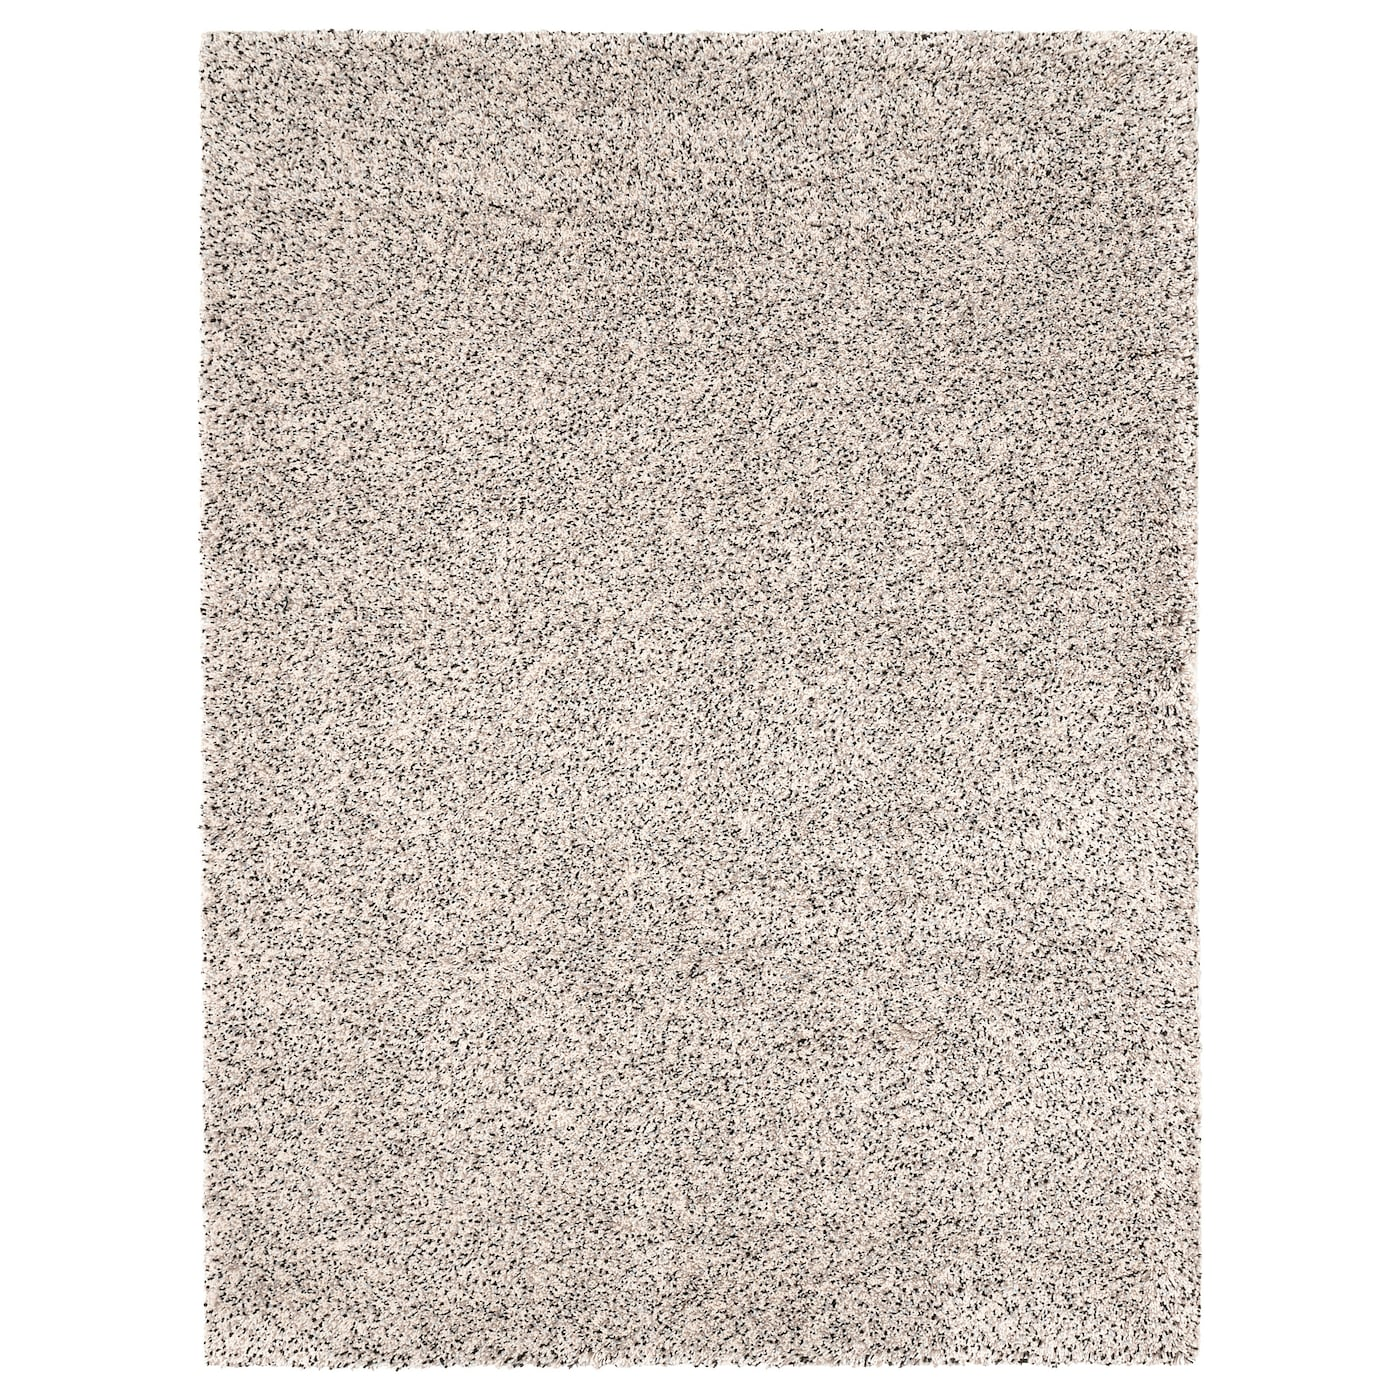 Vindum Rug High Pile White 6 7 X8